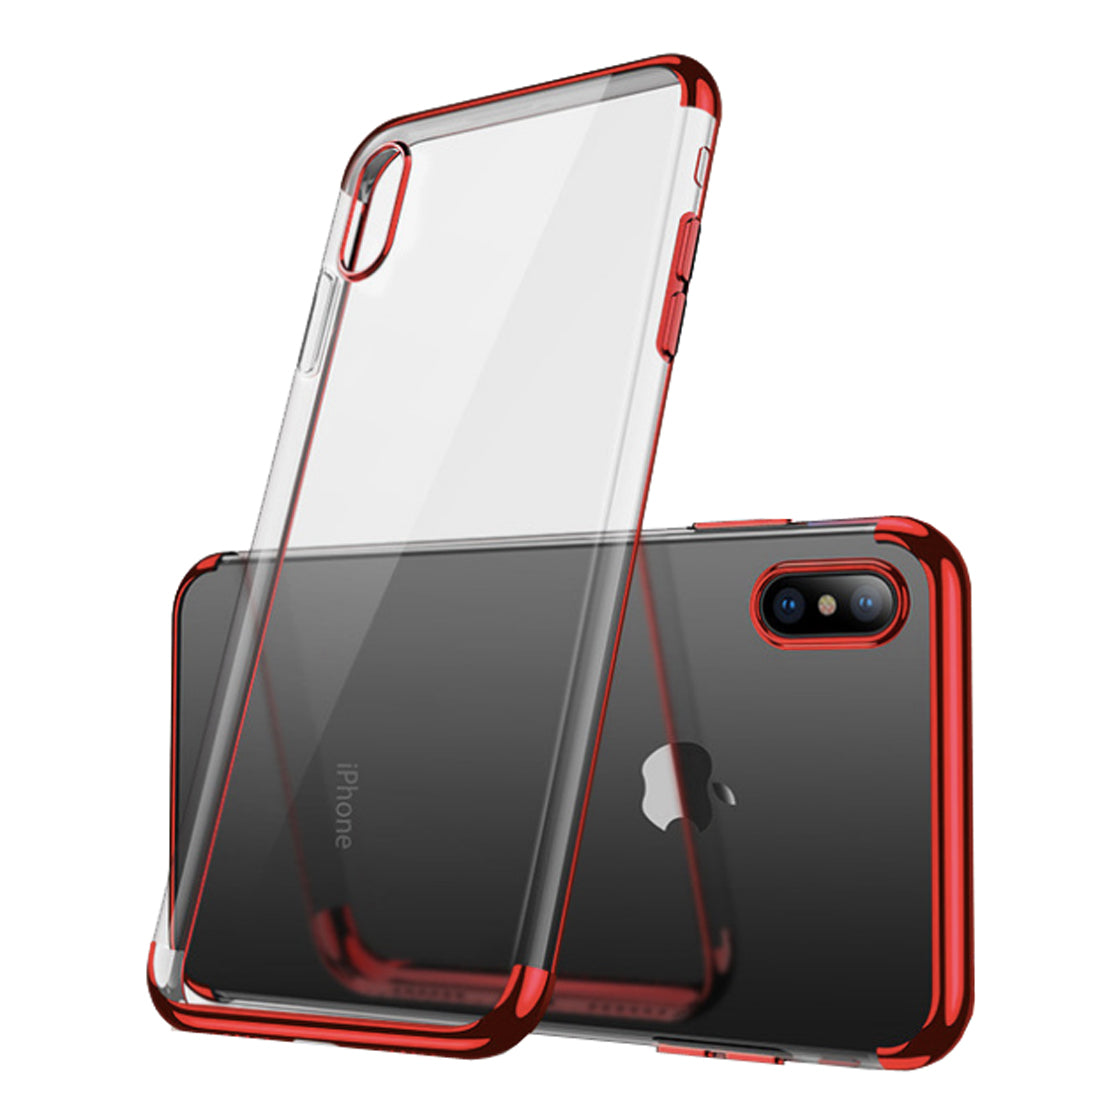 Chrome Plated Transparent Flexible Protective Case Cover for Apple iPhone X - Red - Mobizang